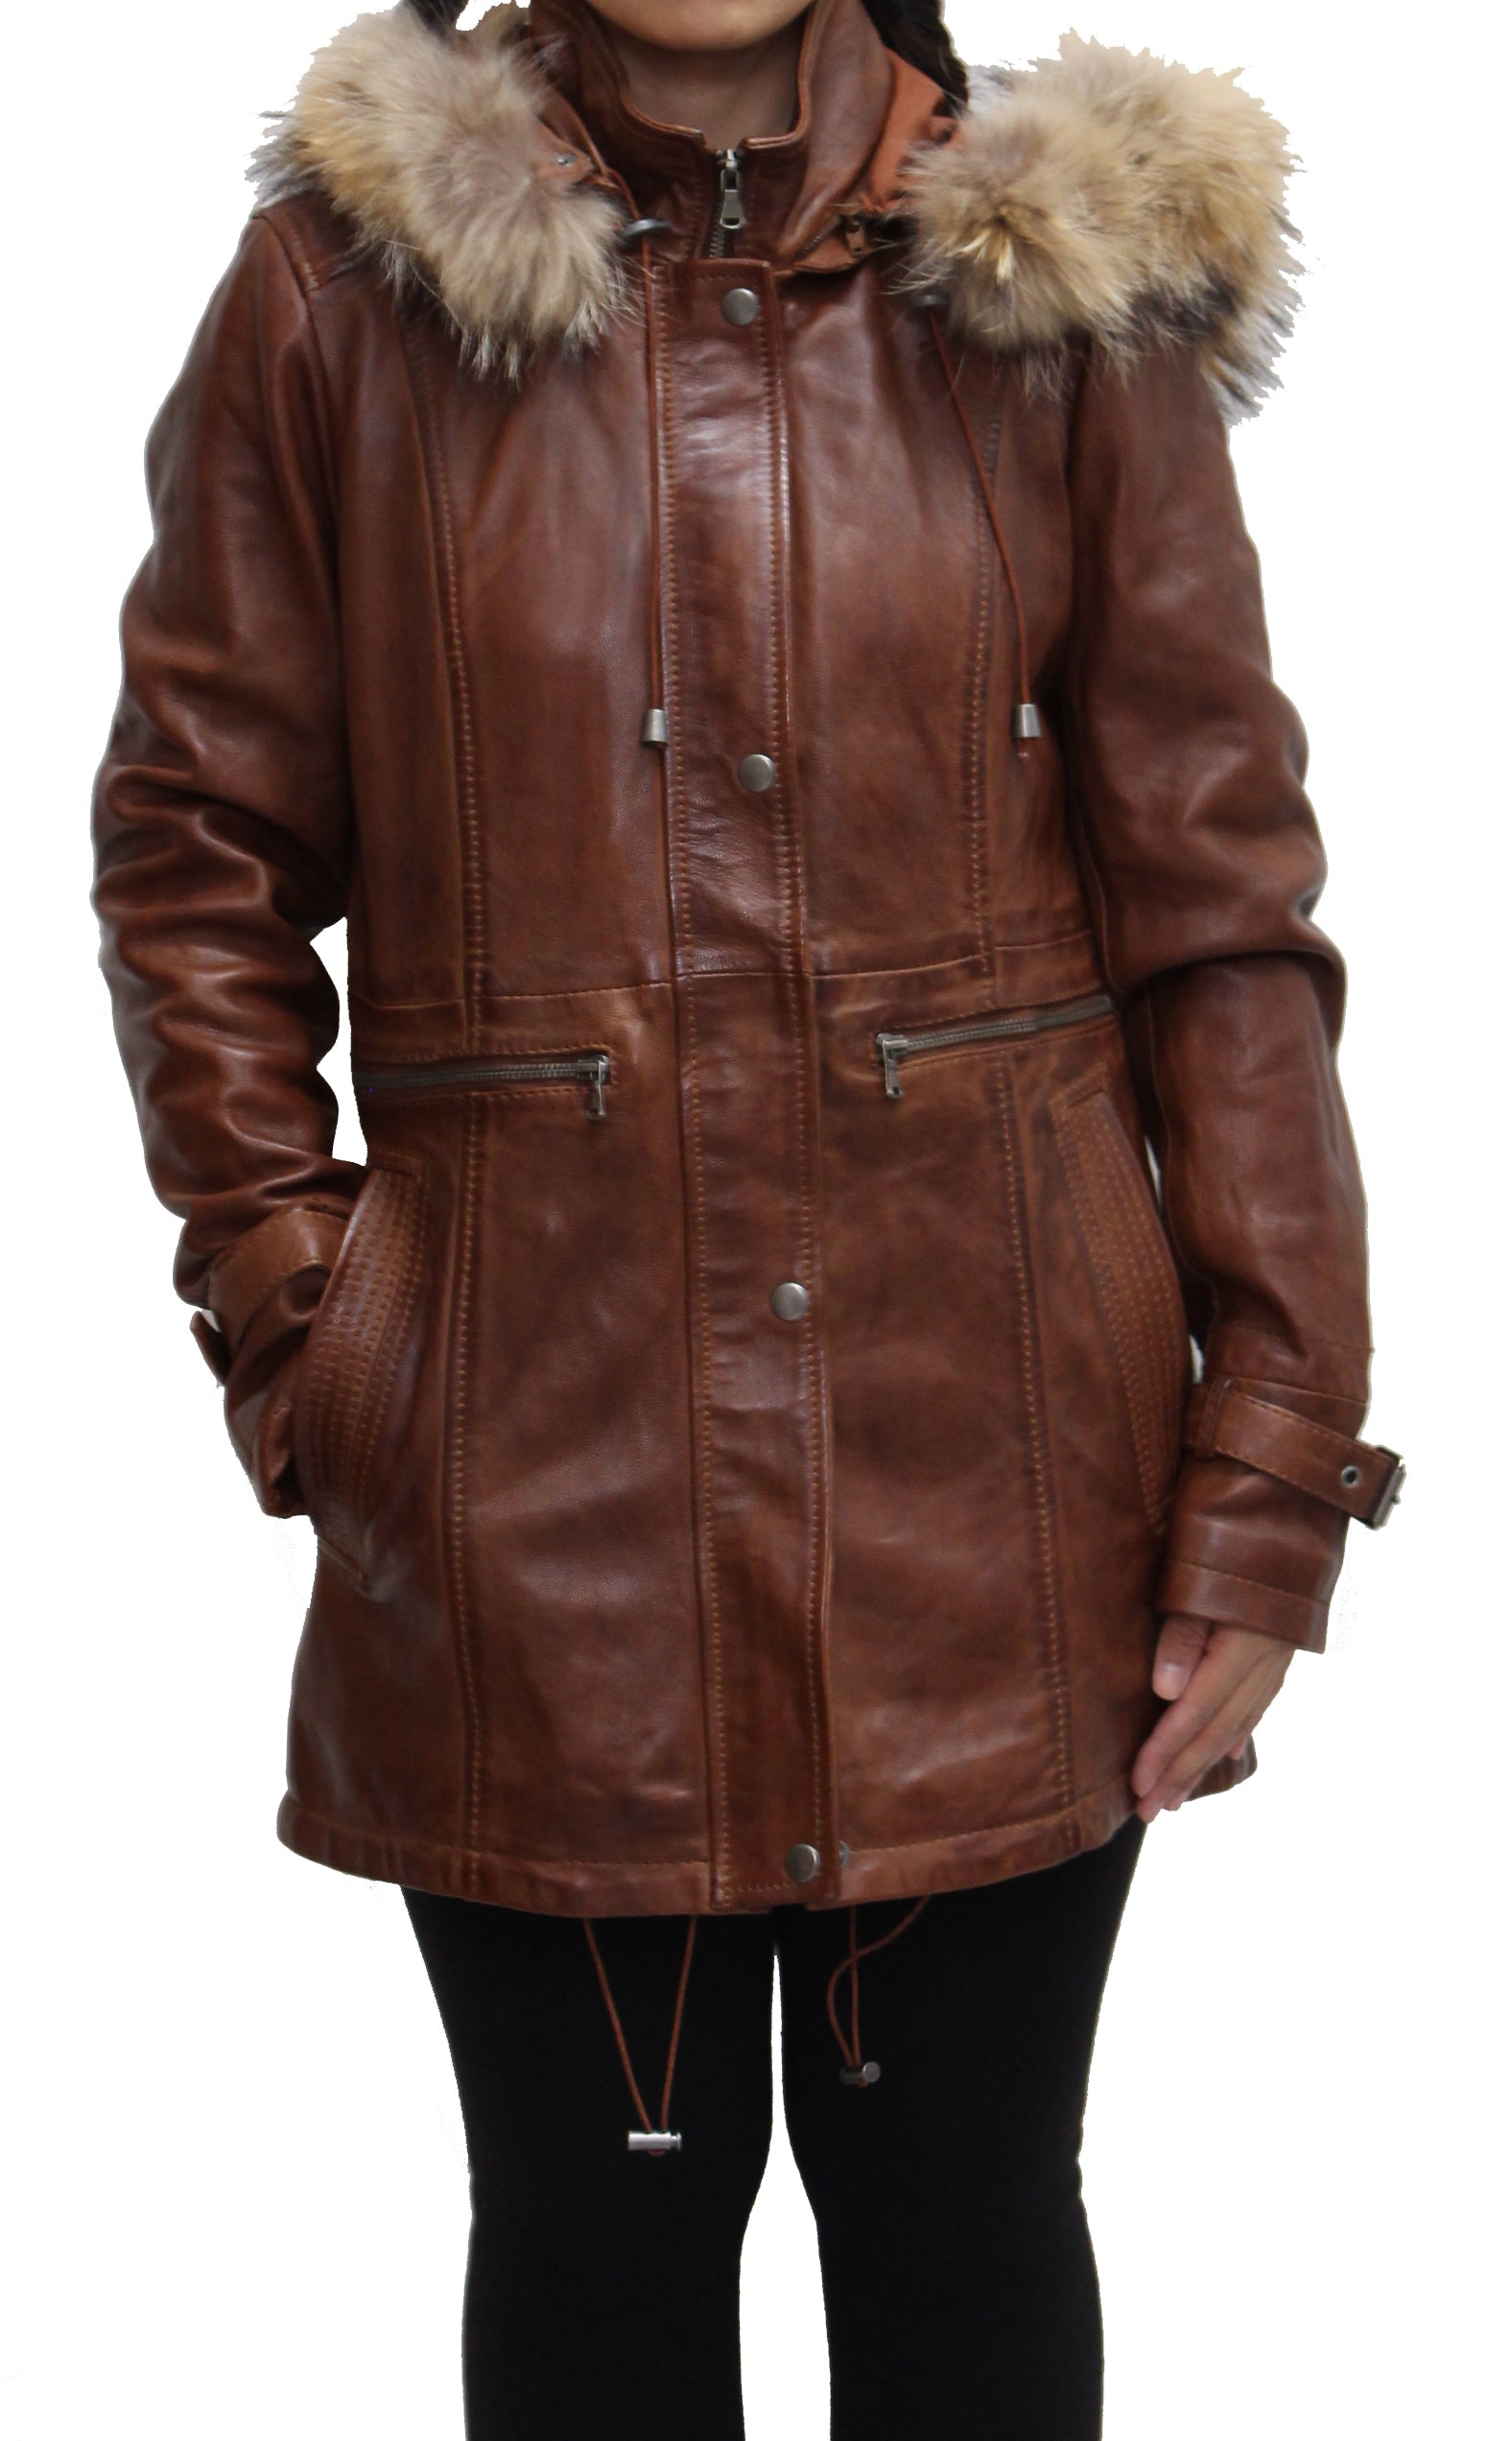 Womens Real Leather Three Quarter Hooded Coat. Available in Black and Cognac Brown